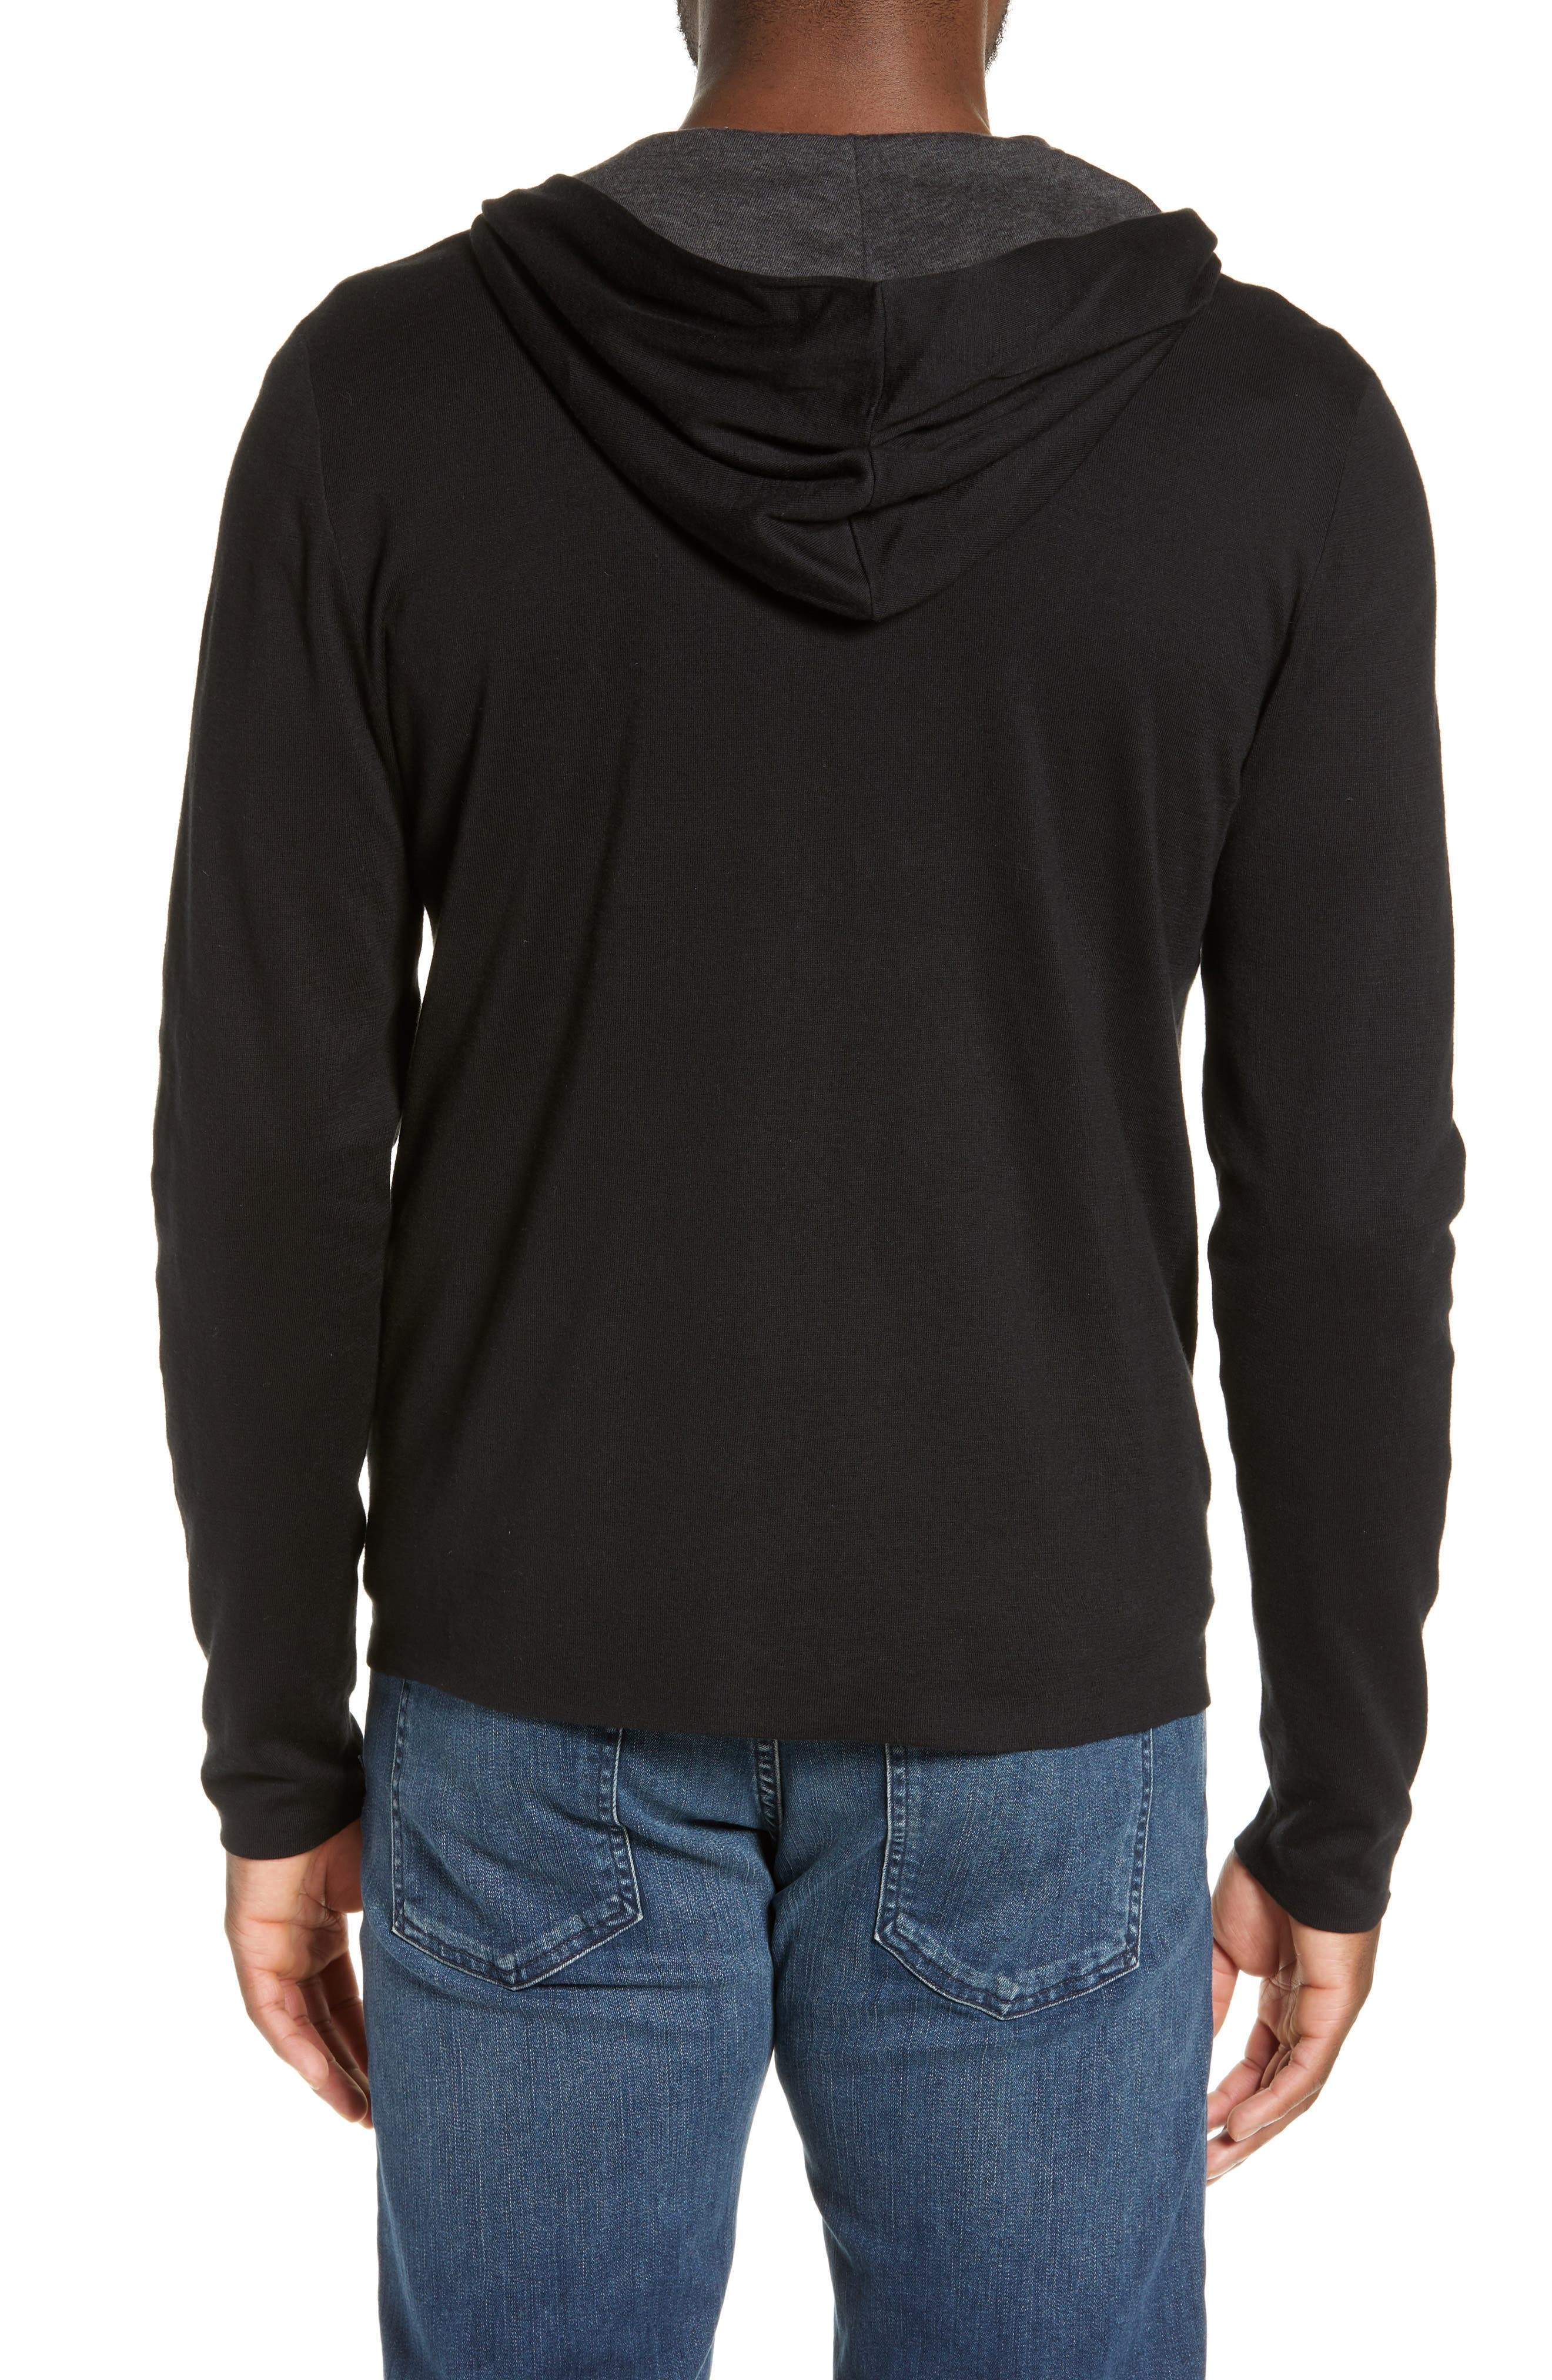 JAMES PERSE, Double Layer Full Zip Hoodie, Alternate thumbnail 2, color, 003